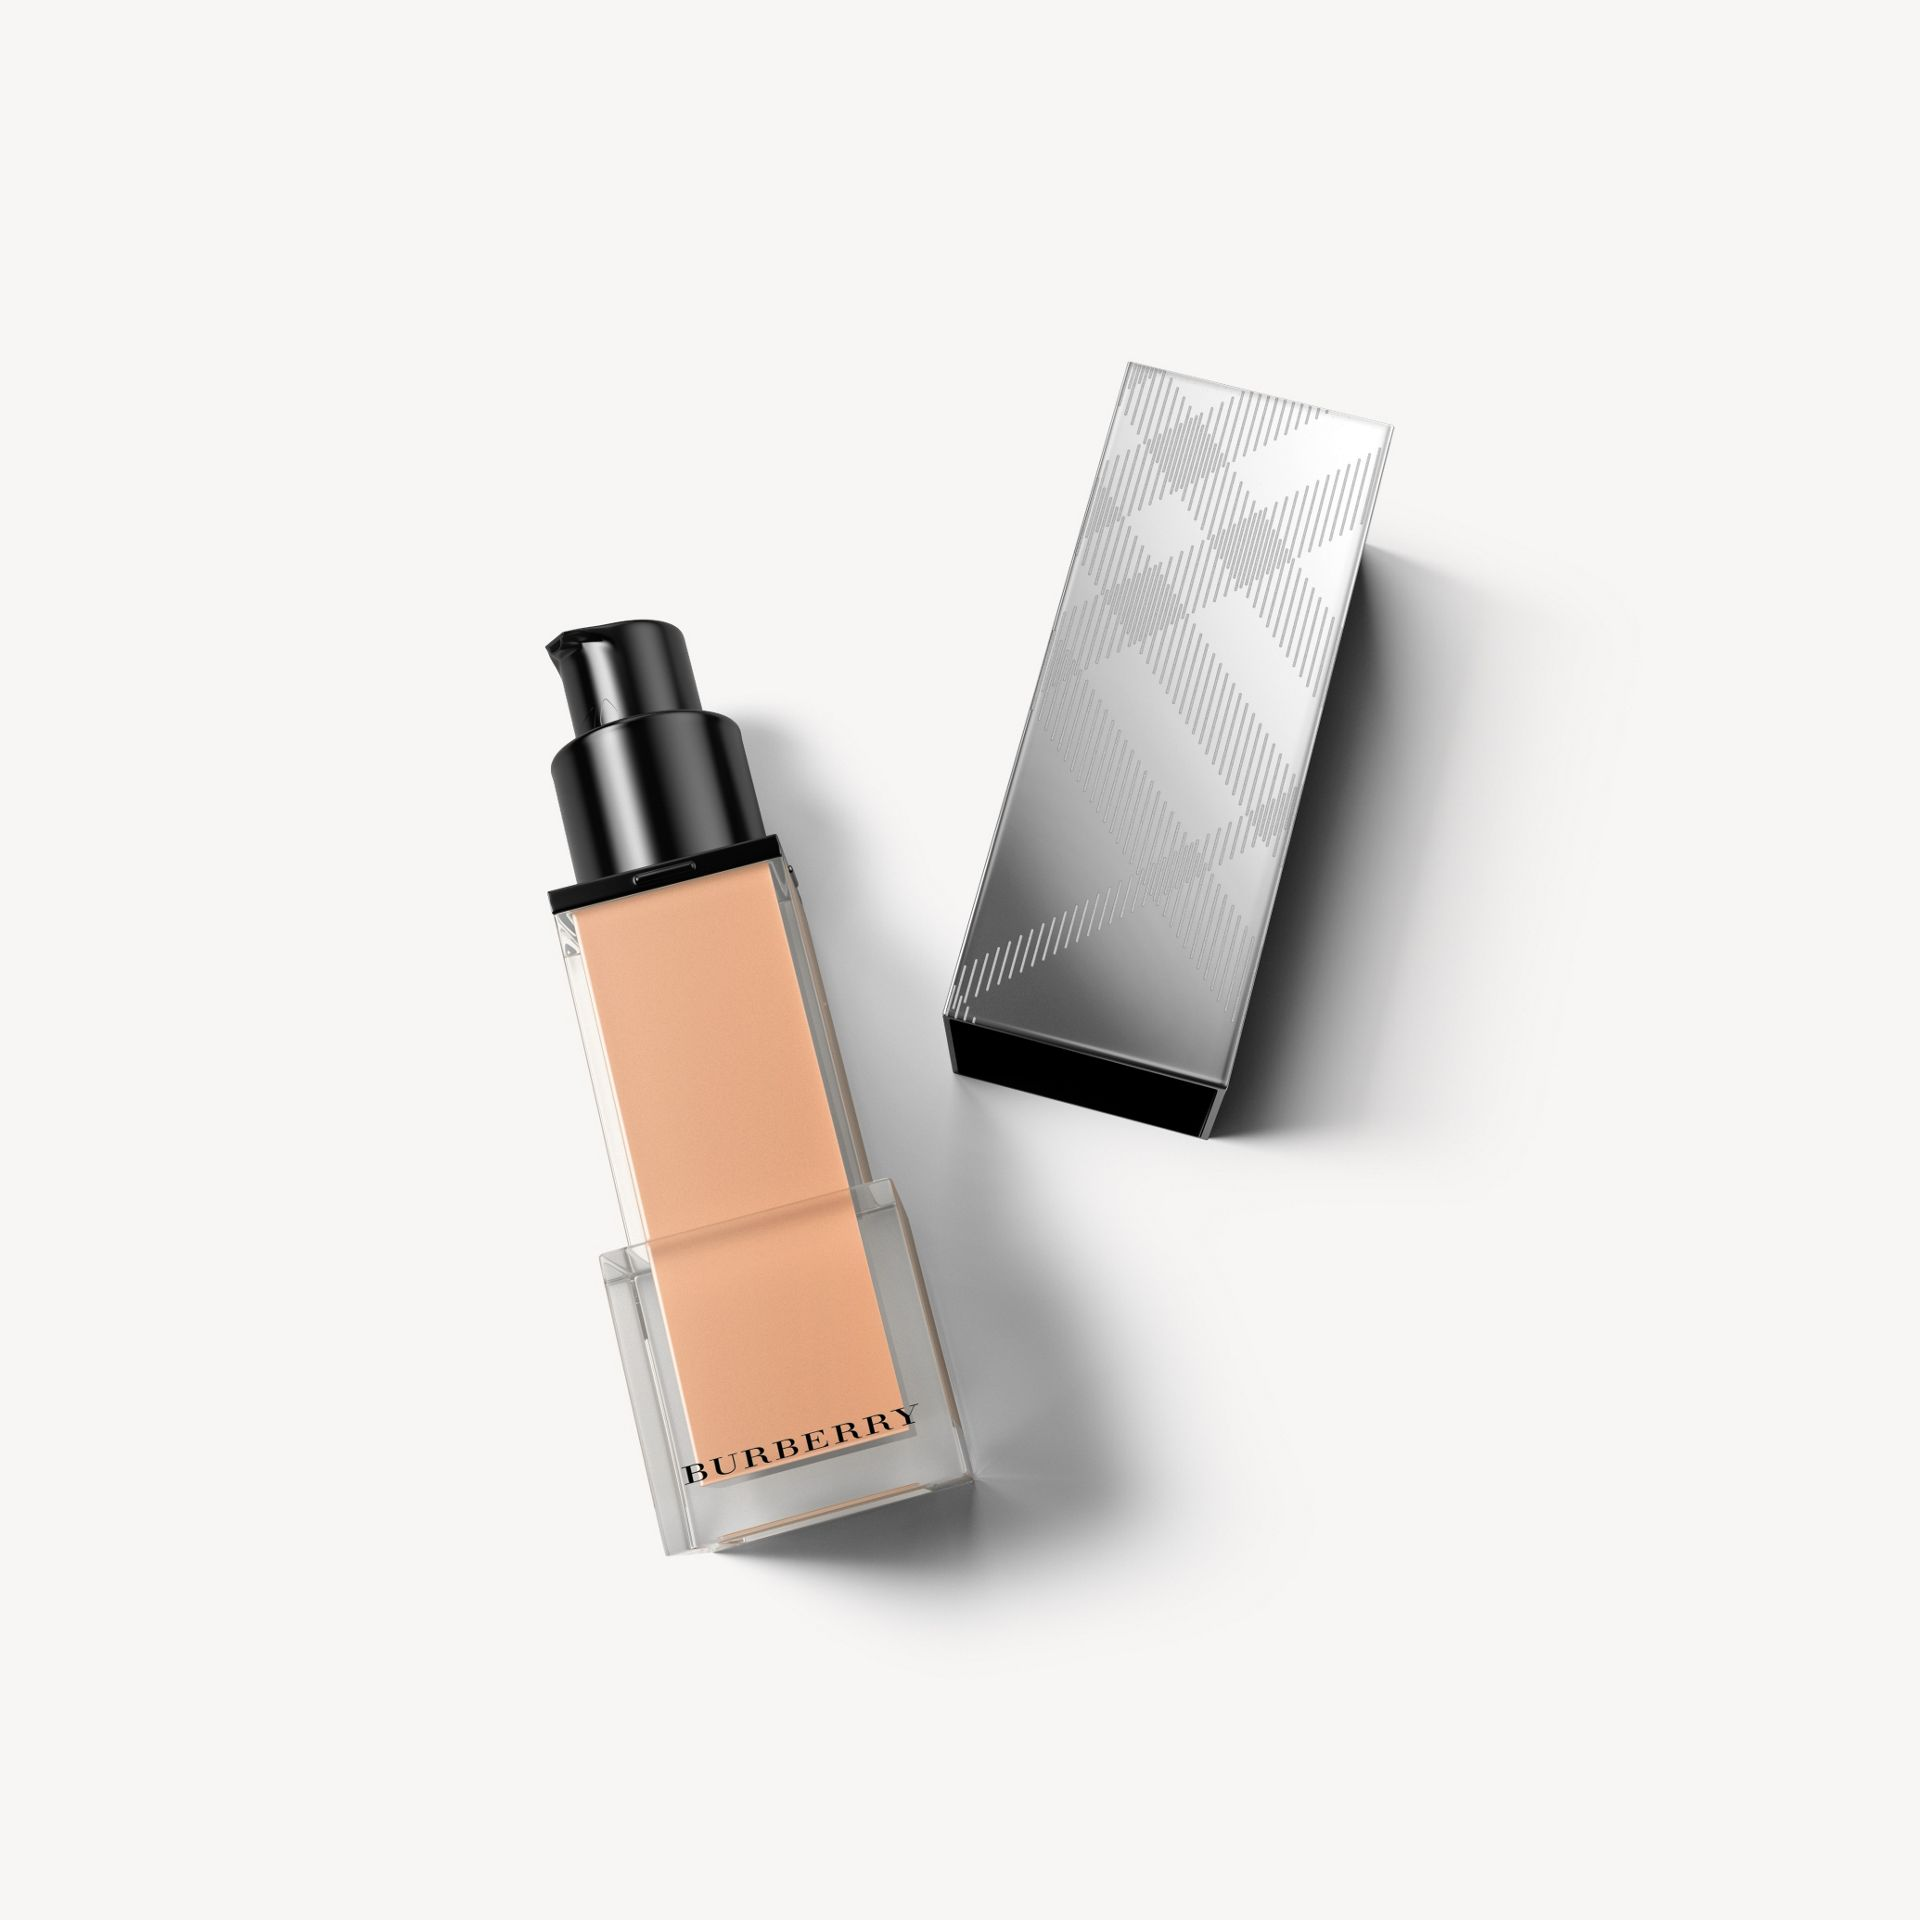 Rosy nude 31 Fresh Glow Foundation SPF 15 PA+++ – Rosy Nude No.31 - photo de la galerie 1